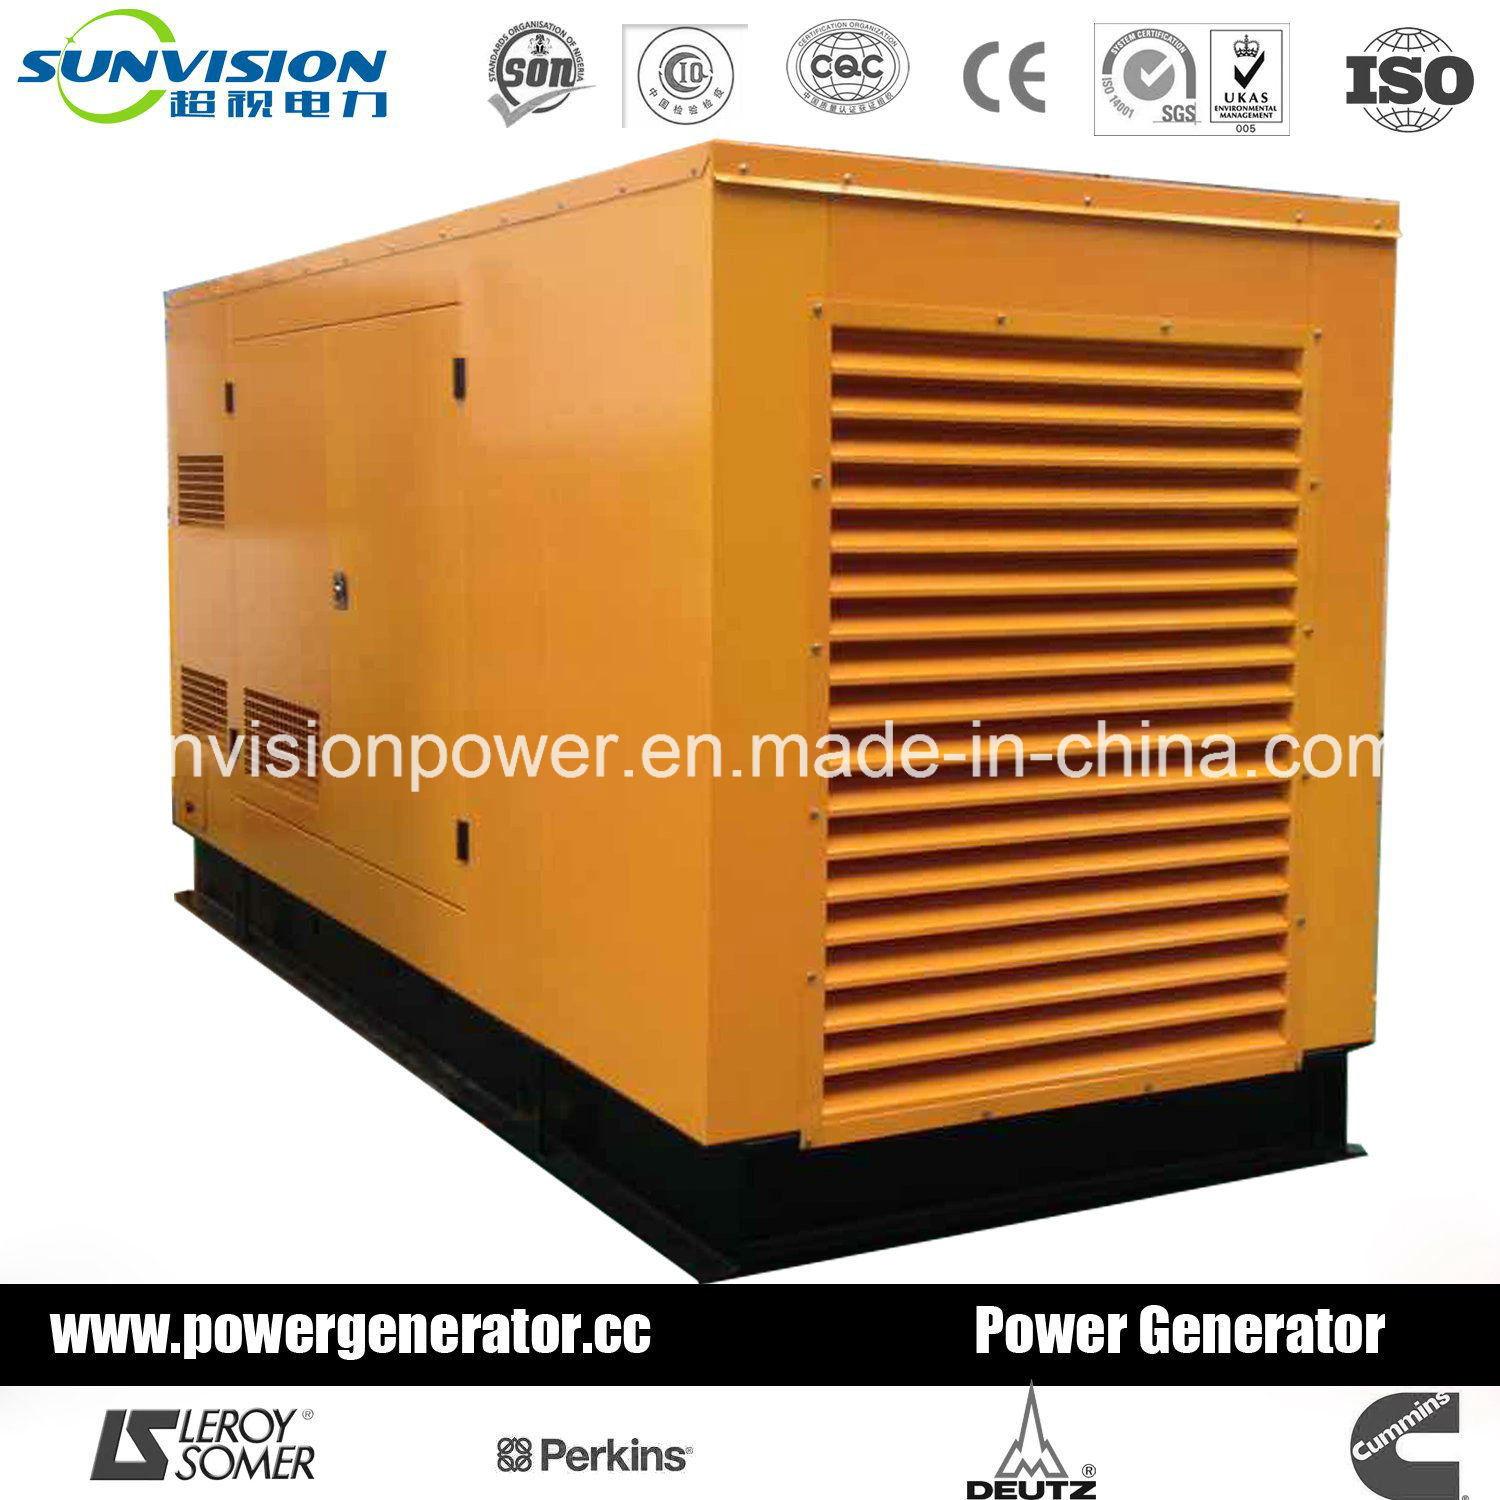 Cummins Gas Genset, Cummins Gas Generator 50kVA to 1000kVA